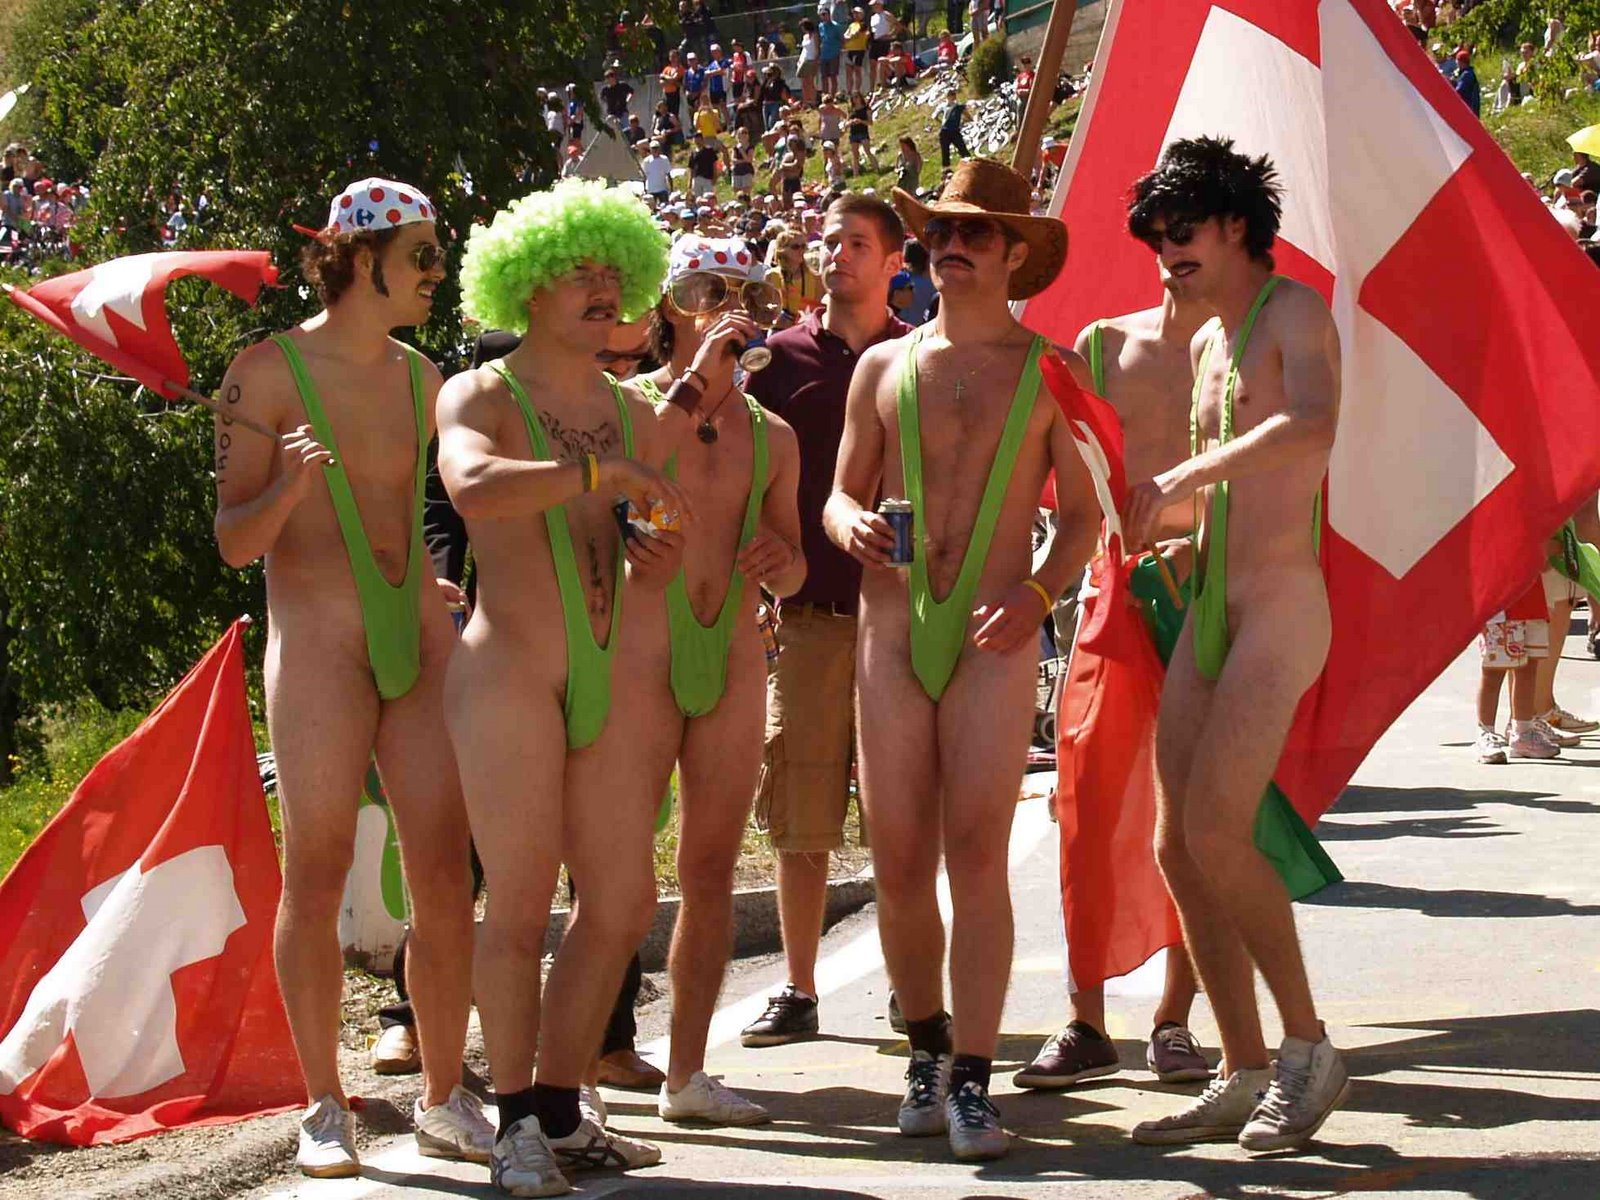 at de tour girl france Naked